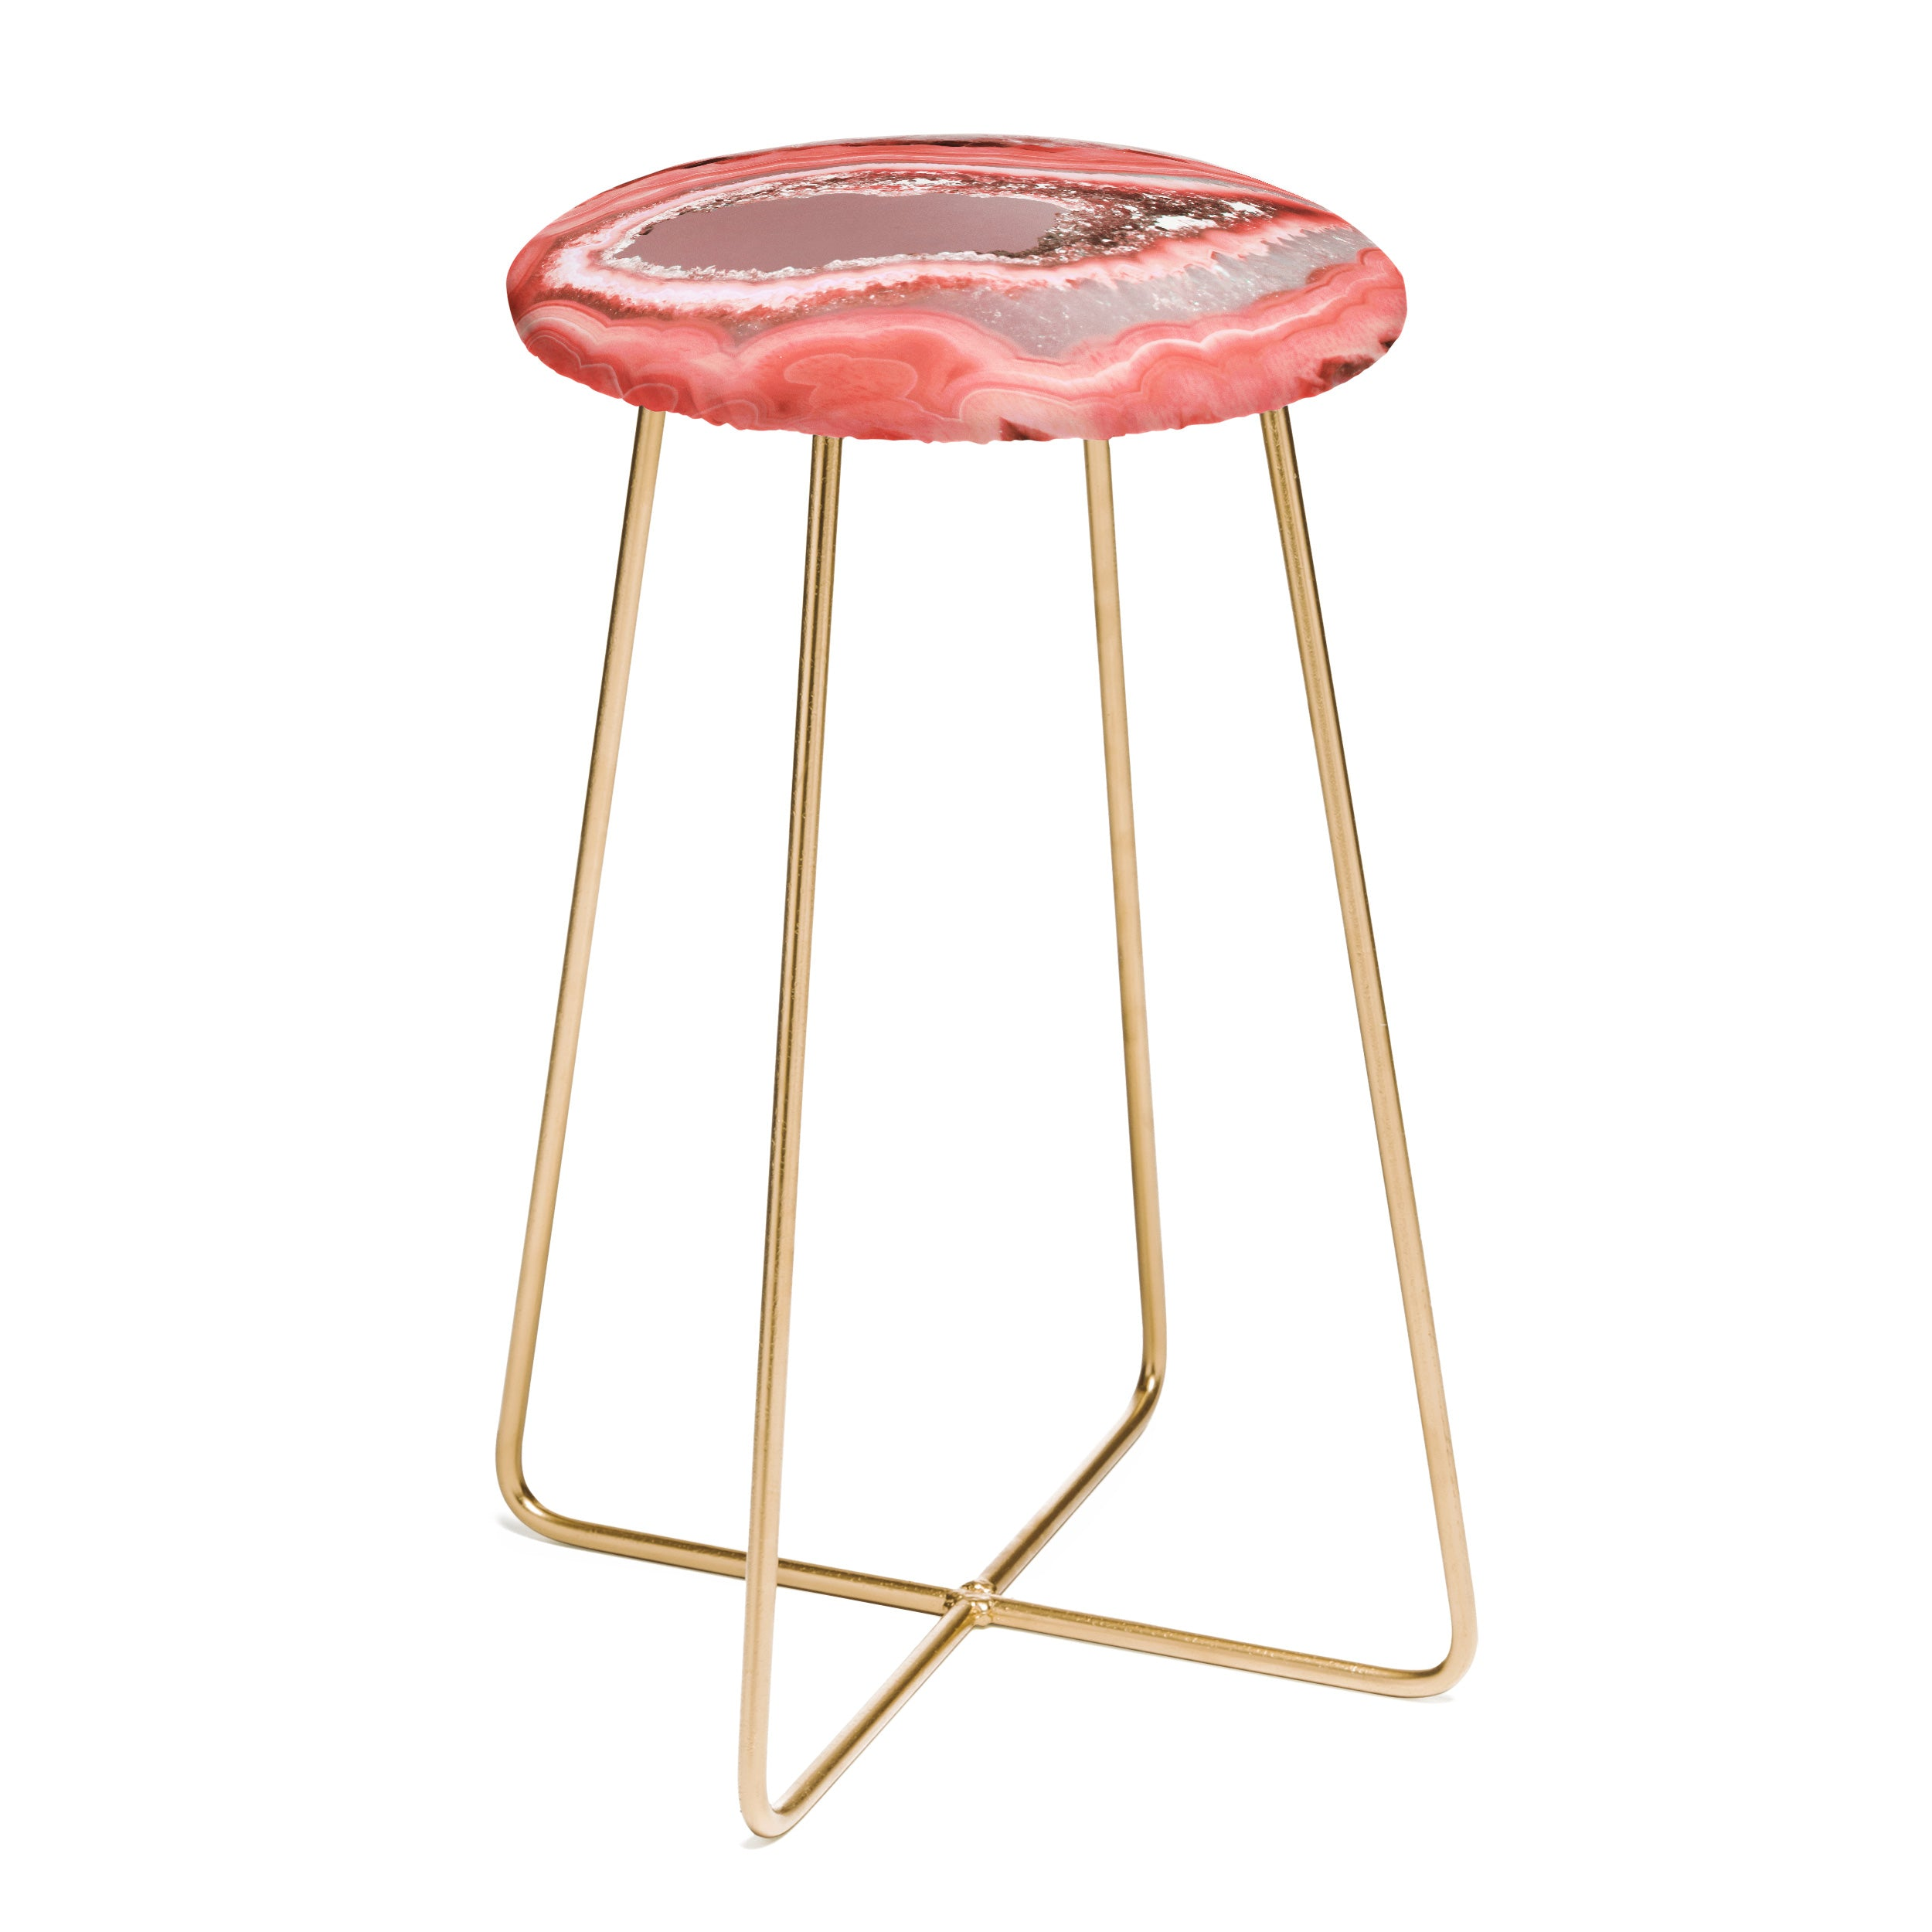 Emanuela Carratoni Coral Agate Counter Stool